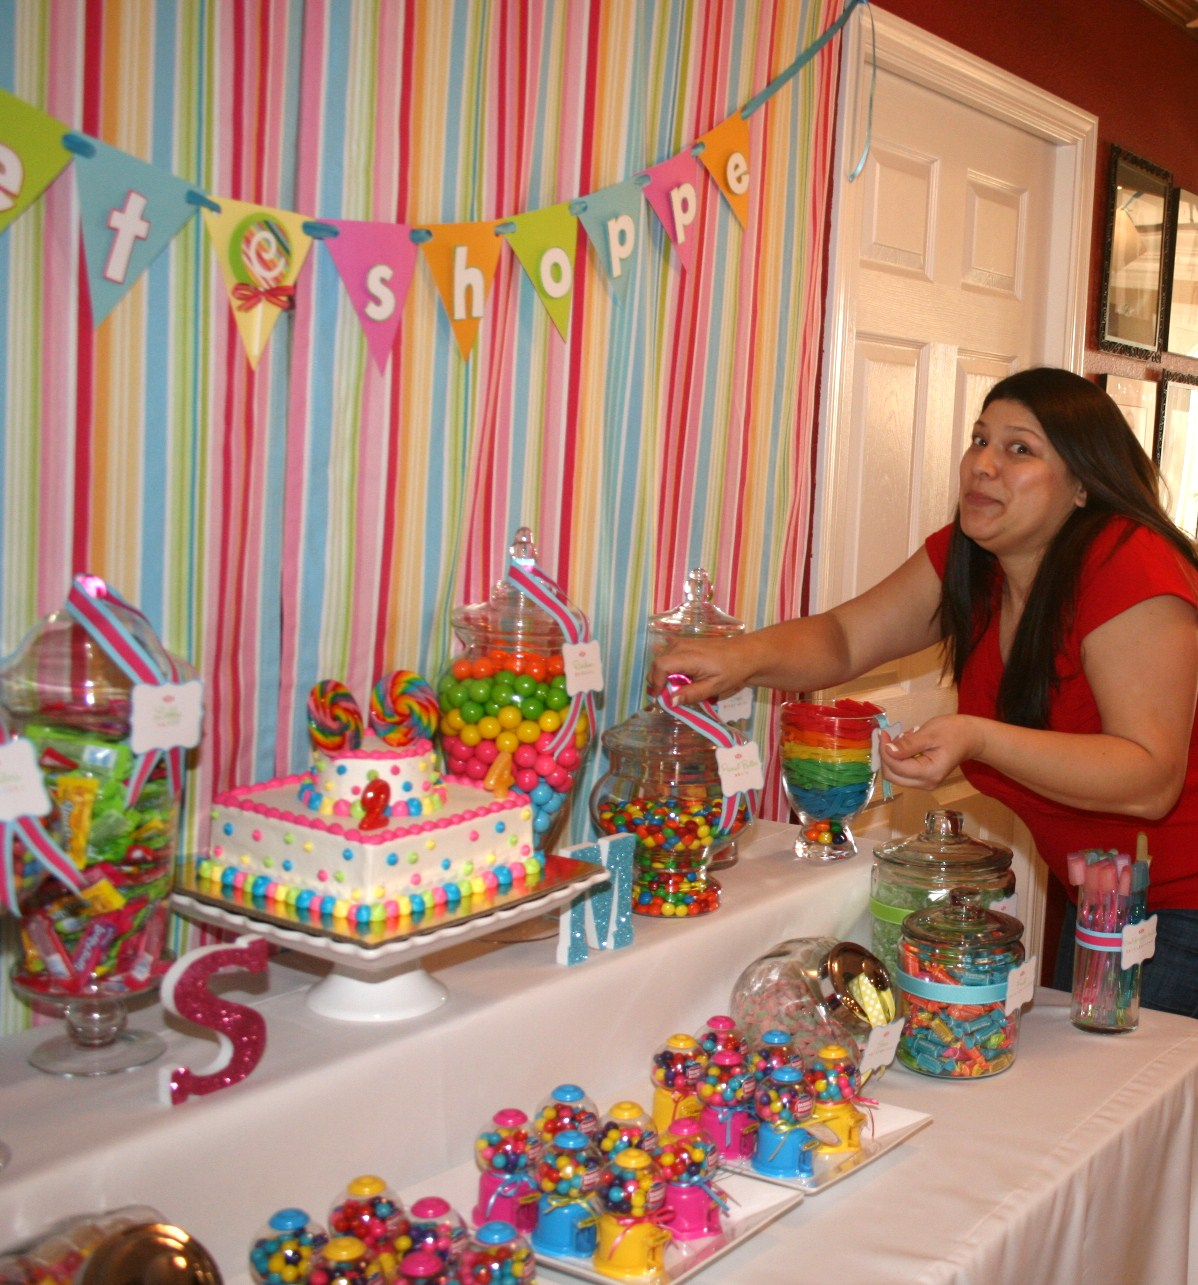 Birthday Party Buffet Table: My Two Cupcakes: Sienna & Mateo's Candyland Birthday Party